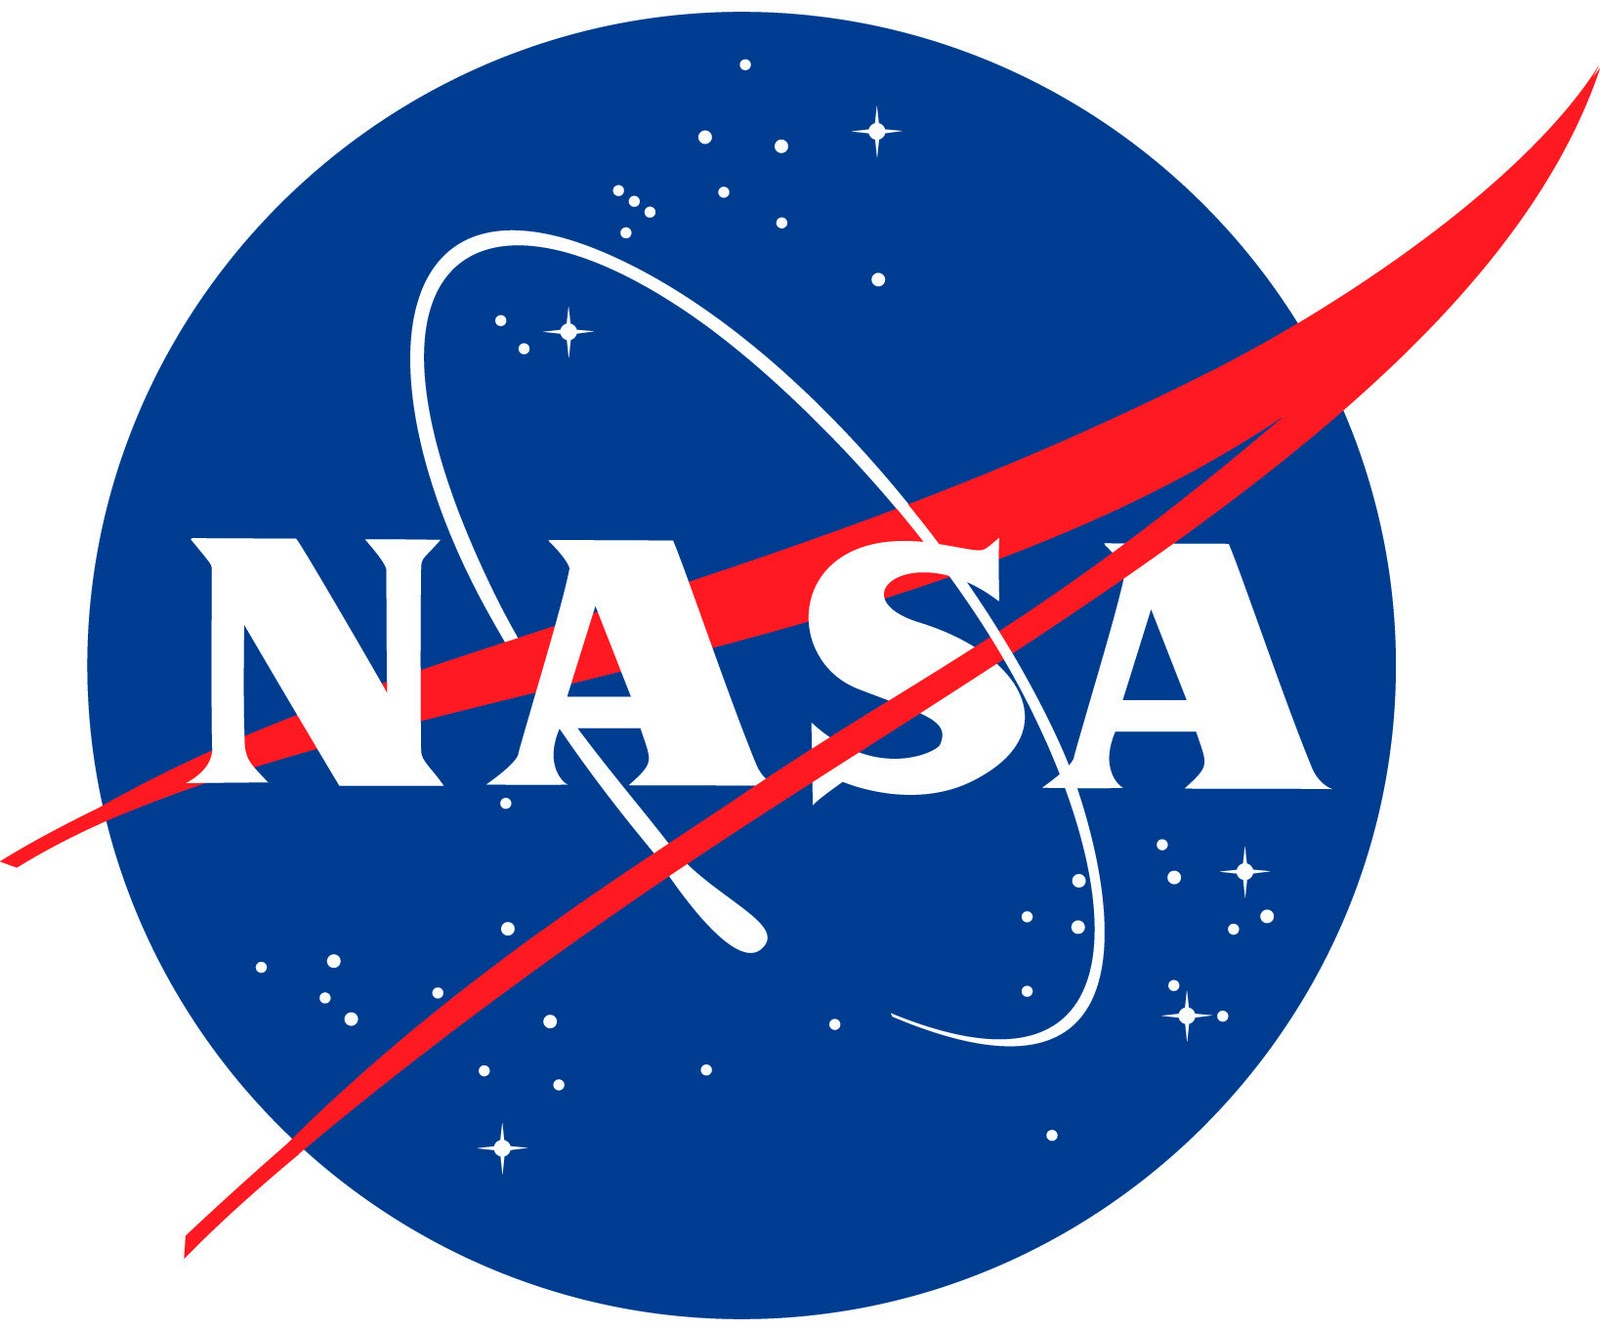 What constellation is on the NASA logo?.